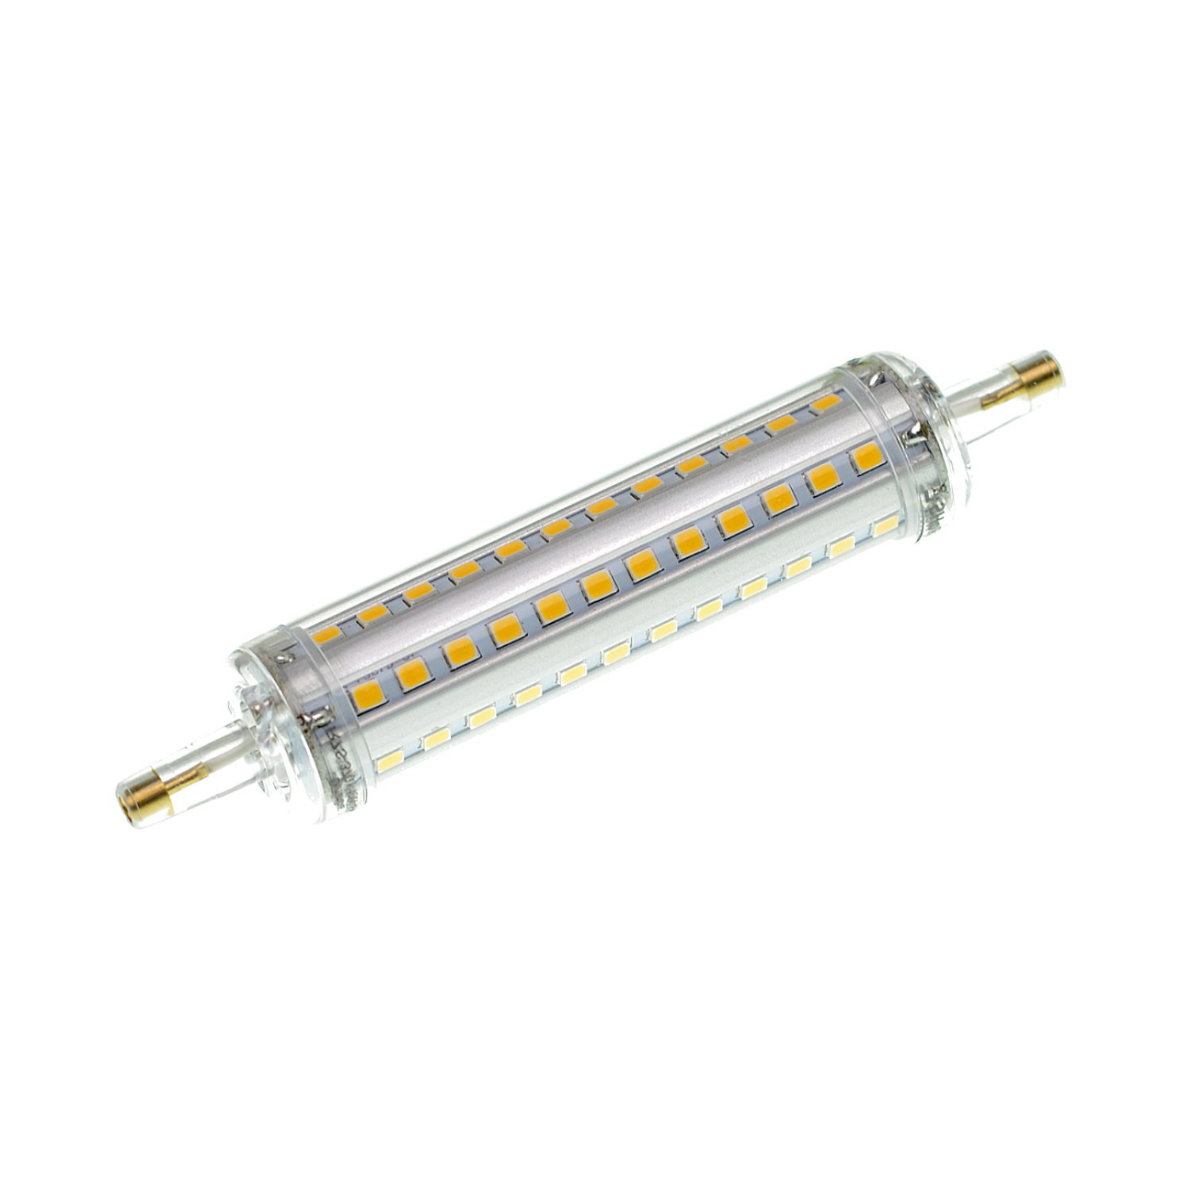 R7s Led Led Stab Leuchtmittel R7s Dimmbar 118mm Ip44 10w 1200lm